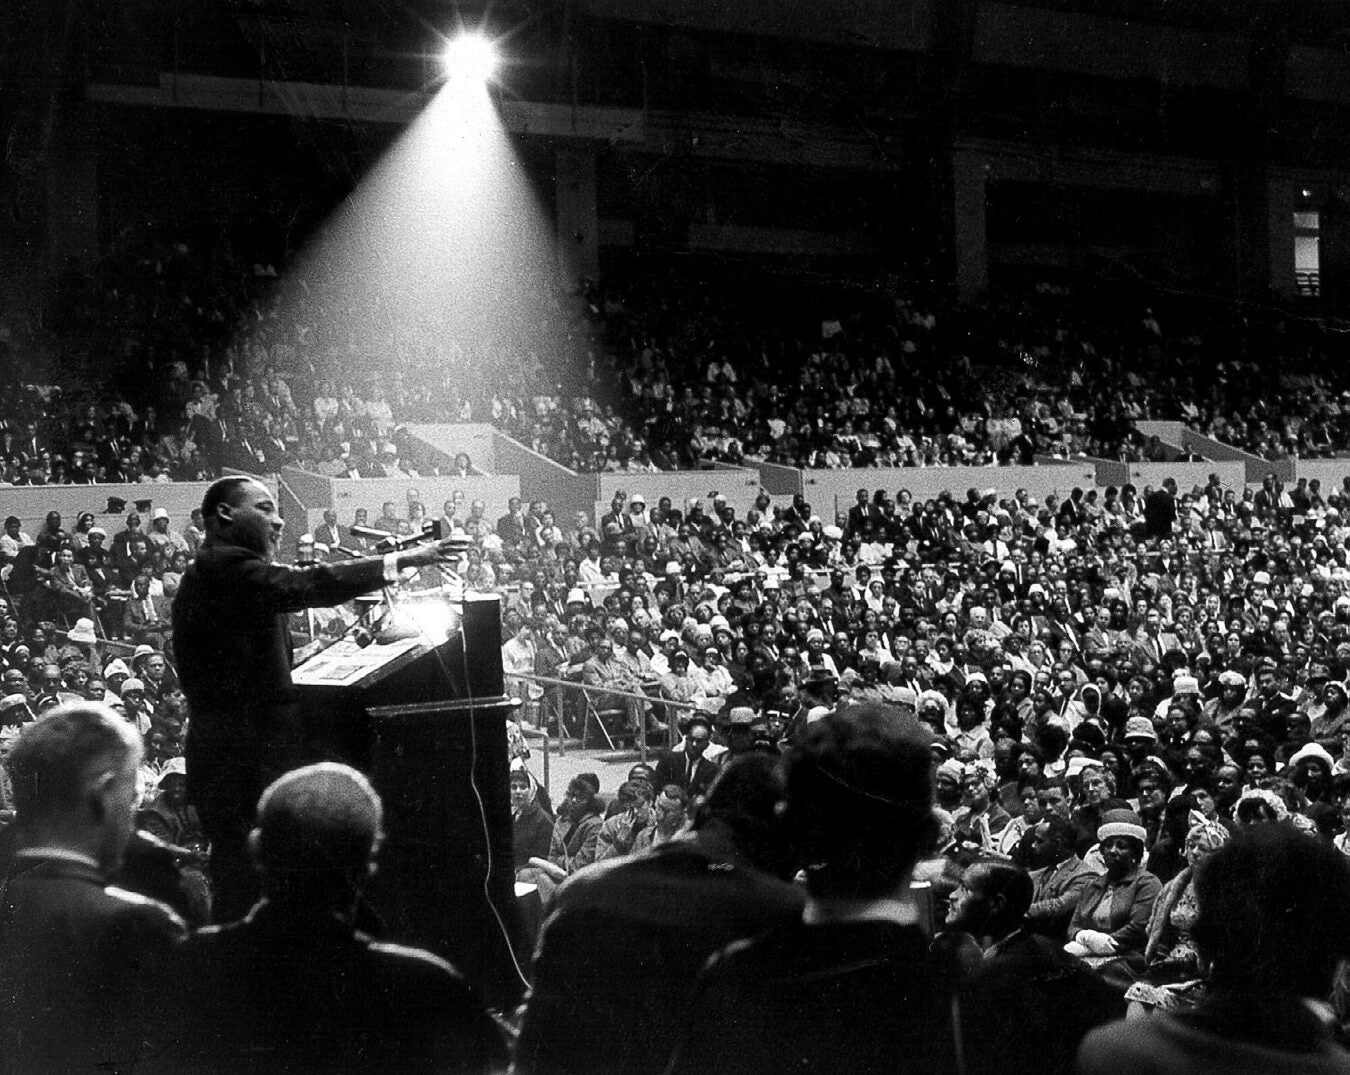 Martin Luther King Jr. at a rally.